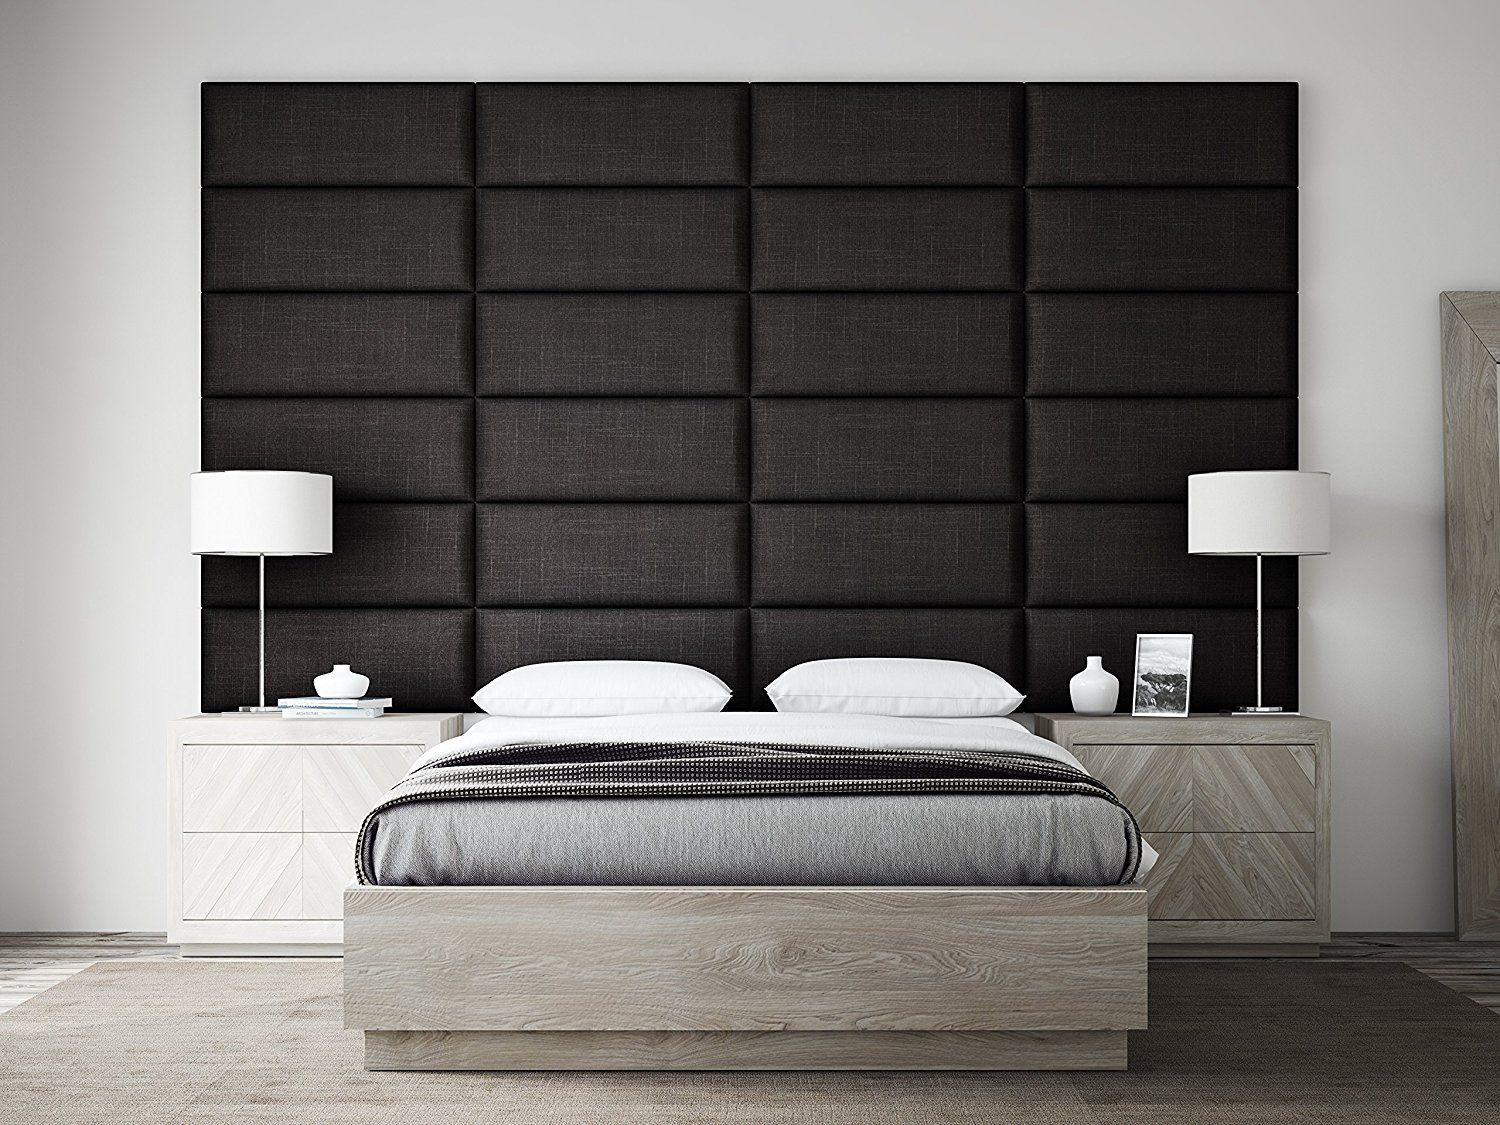 Find A Unique Wall Panel And Hang It As A Headboard Like This One